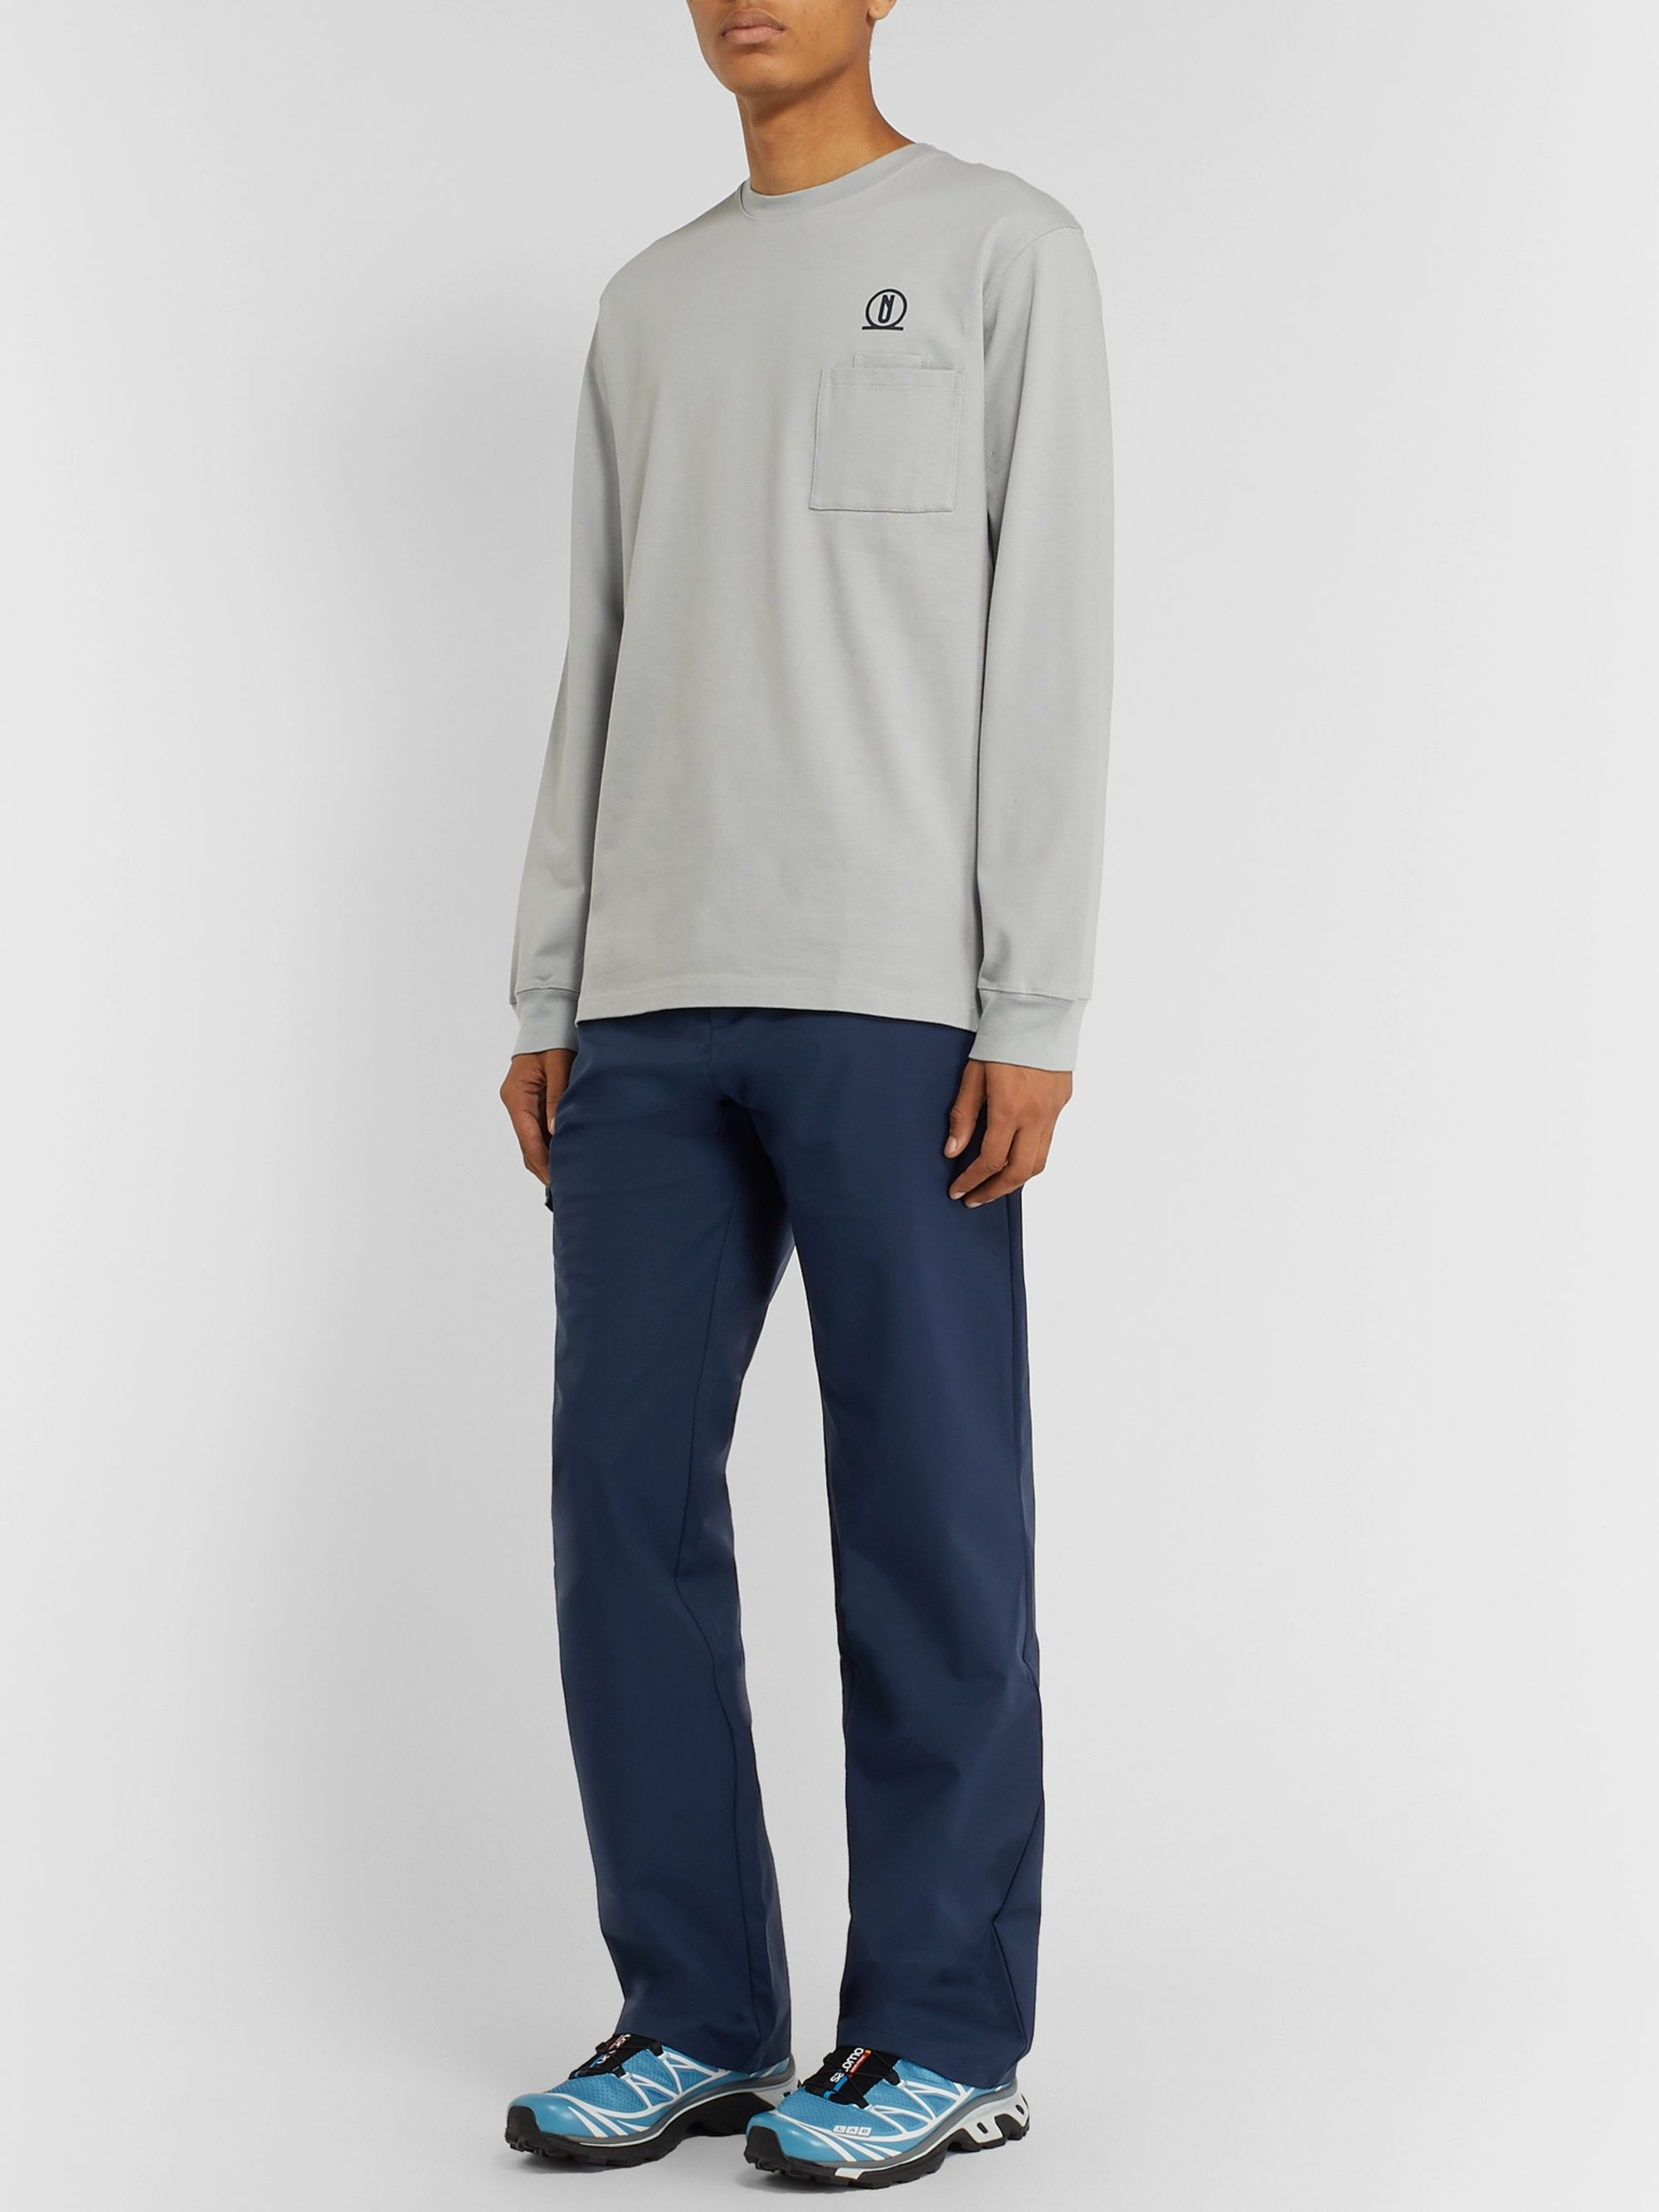 AFFIX Grey Shell Trousers